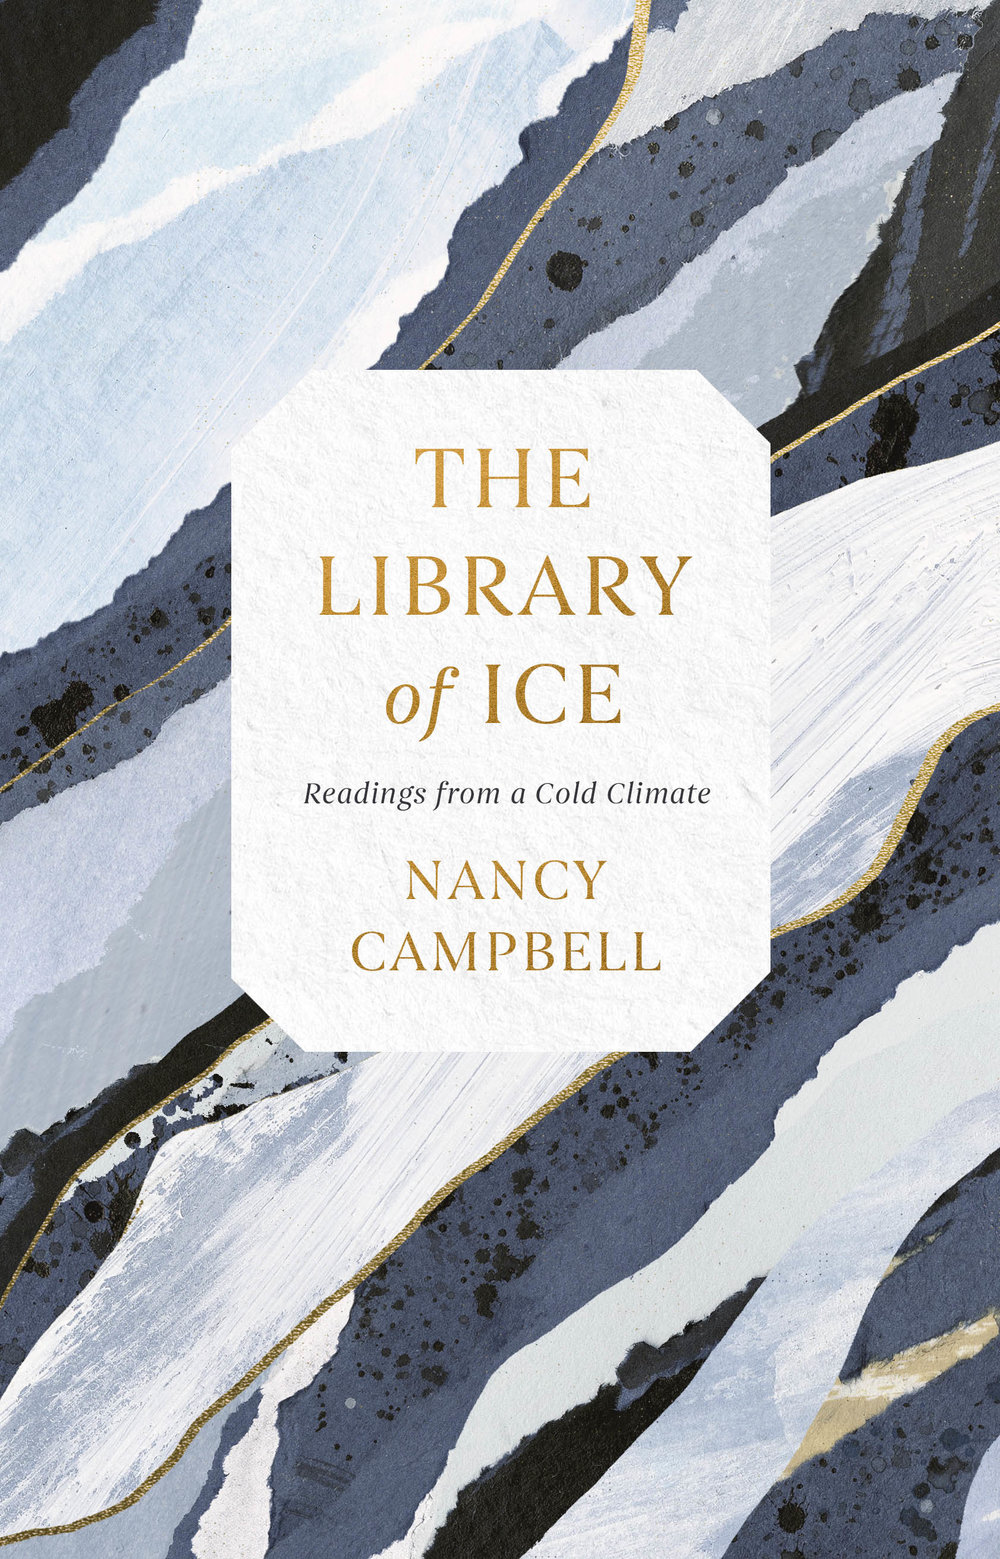 THE LIBRARY OF ICE_cover.jpg